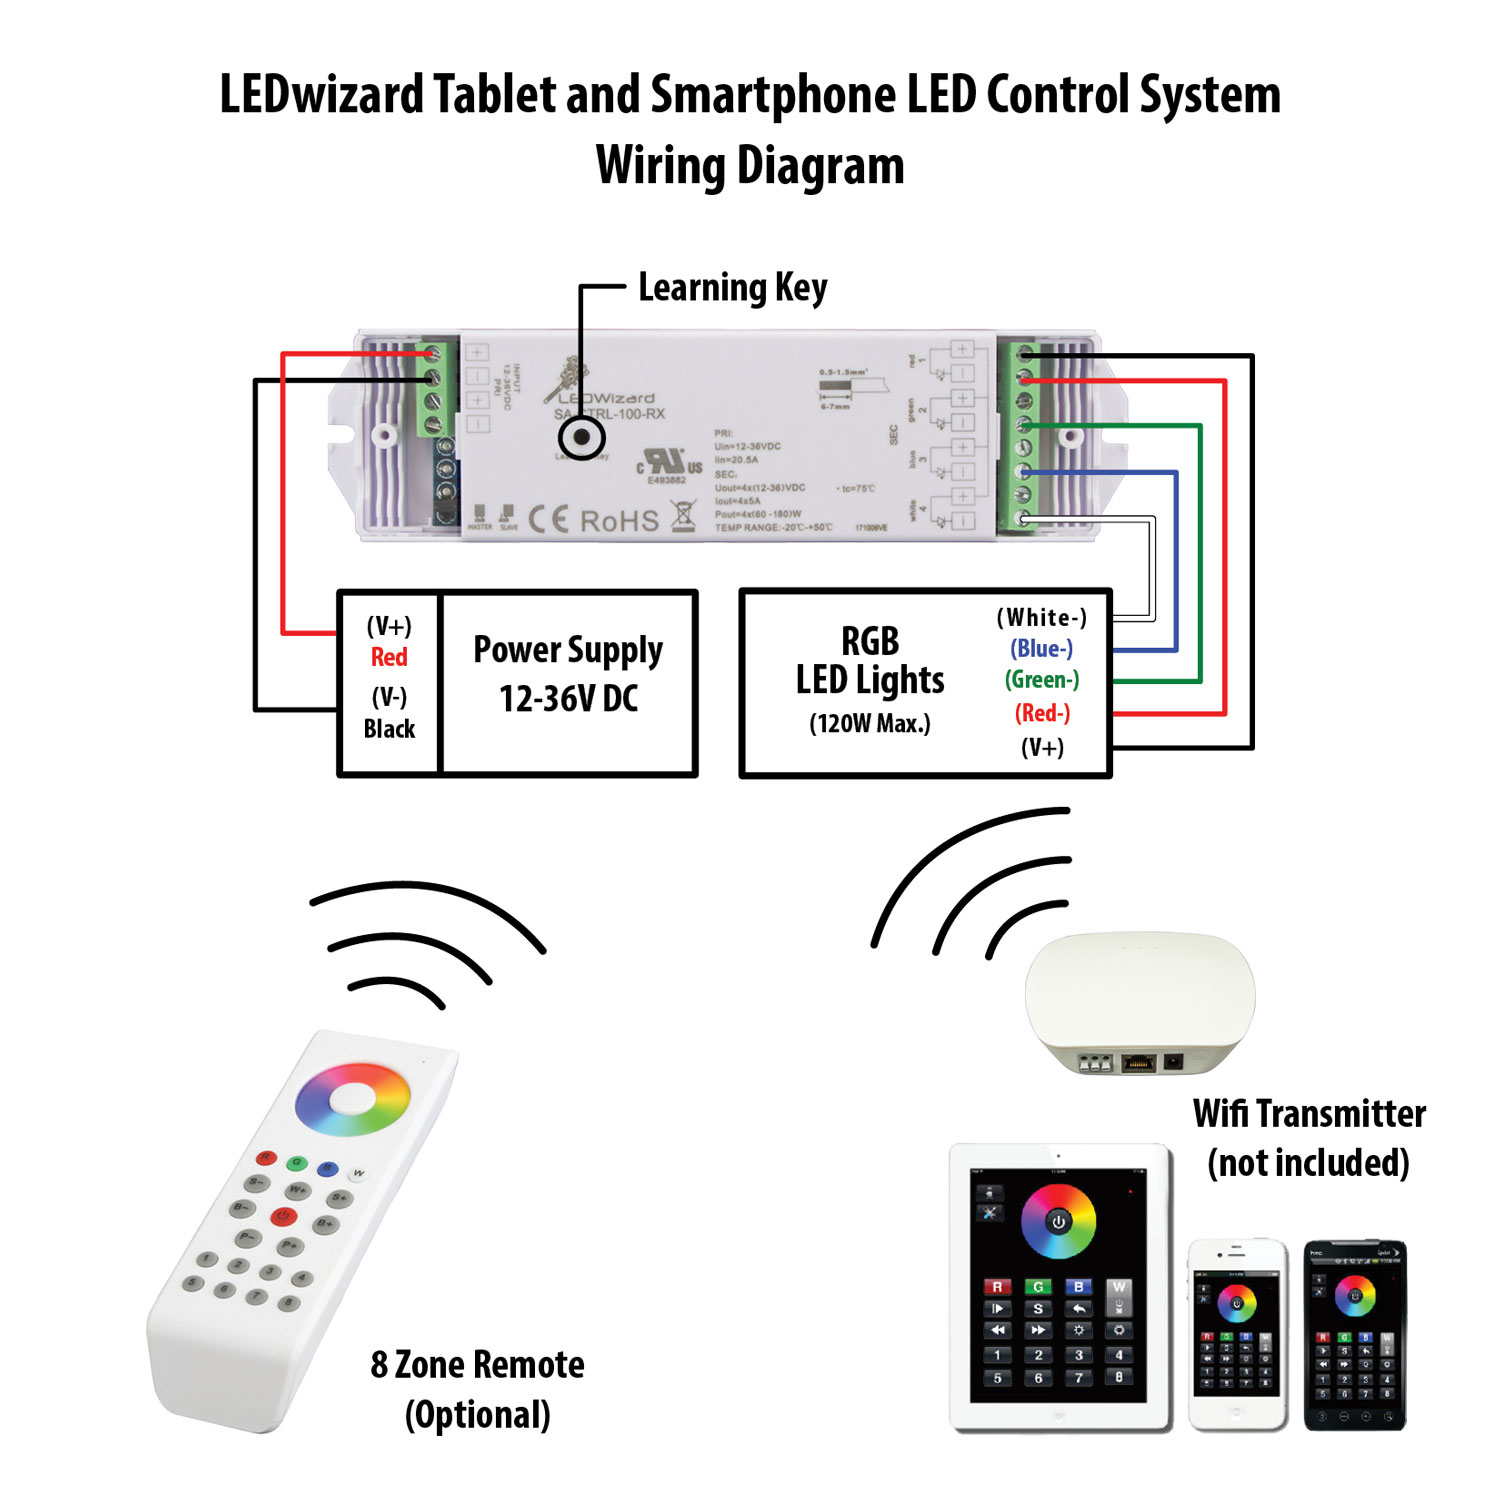 wiring diagram app what causes acne ledwizard smartphone and tablet led controller